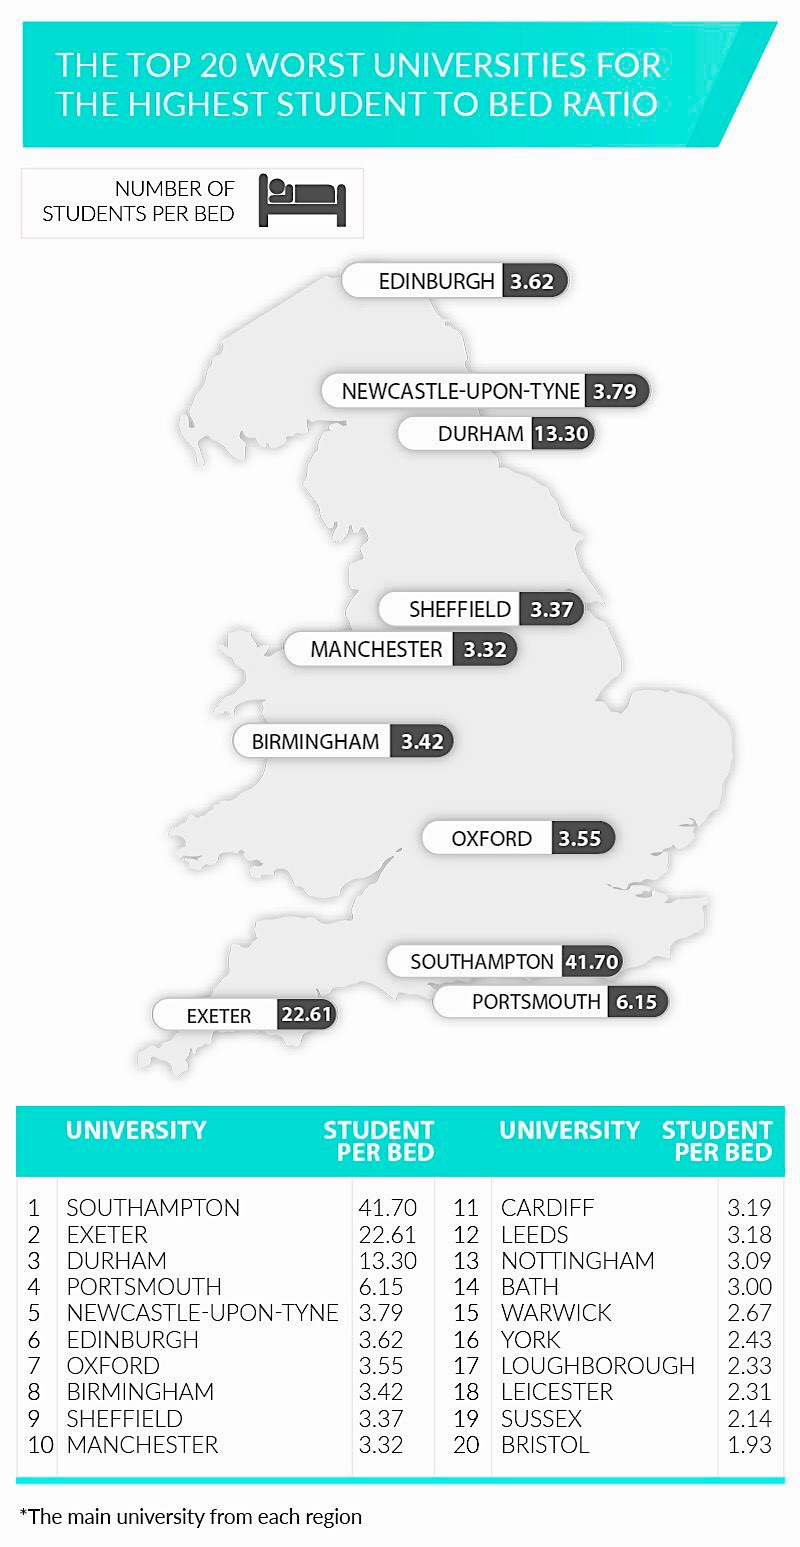 university-accommodation. Statistics show that there is a lack of university-owned accommodation among a large variety of established British universities.